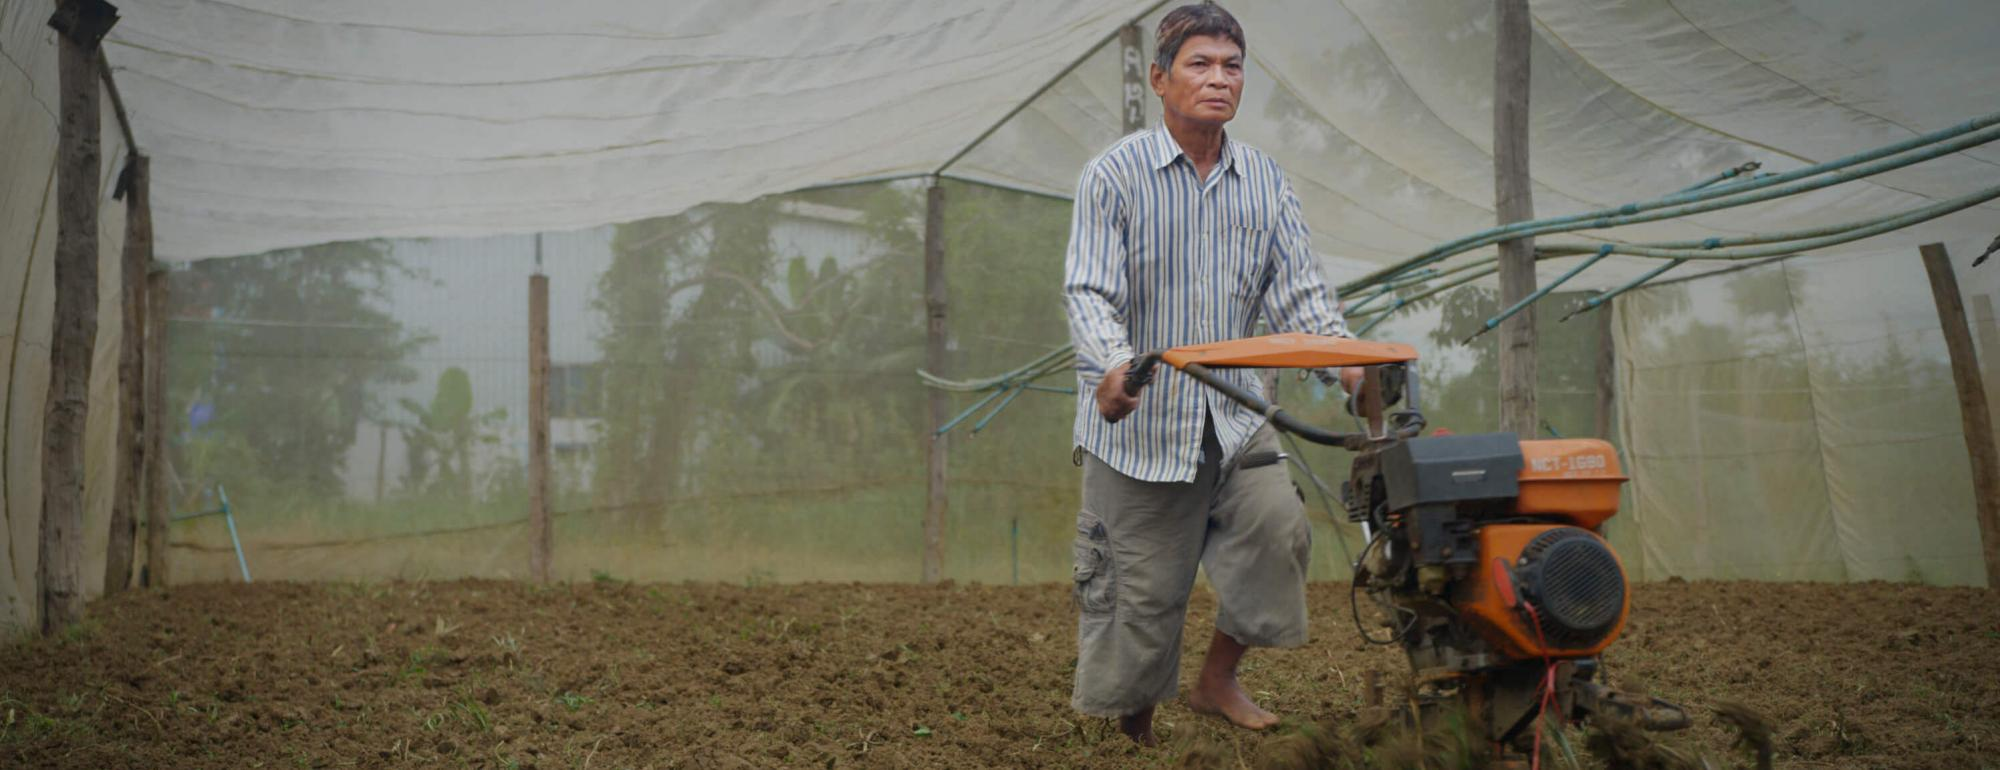 cambodian farmer working in field